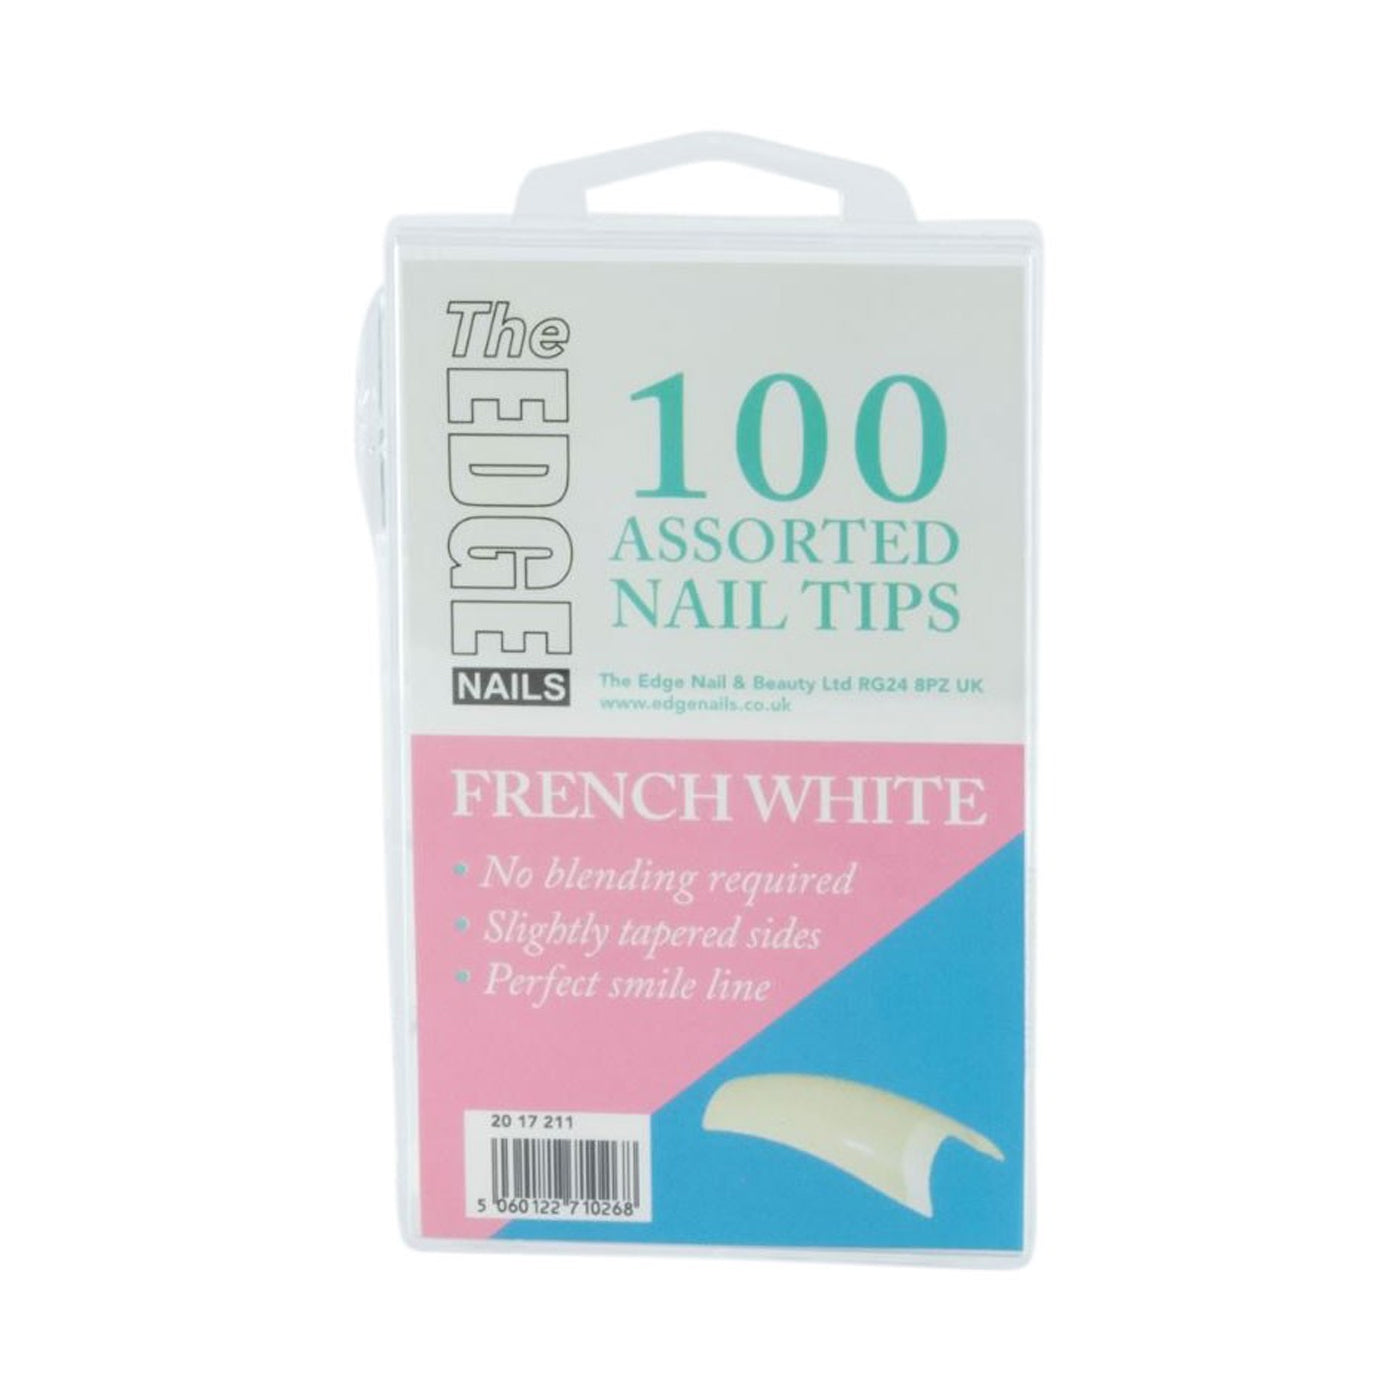 Edge Nails French White Tips Assorted Pack (x100) - Ultimate Hair and Beauty